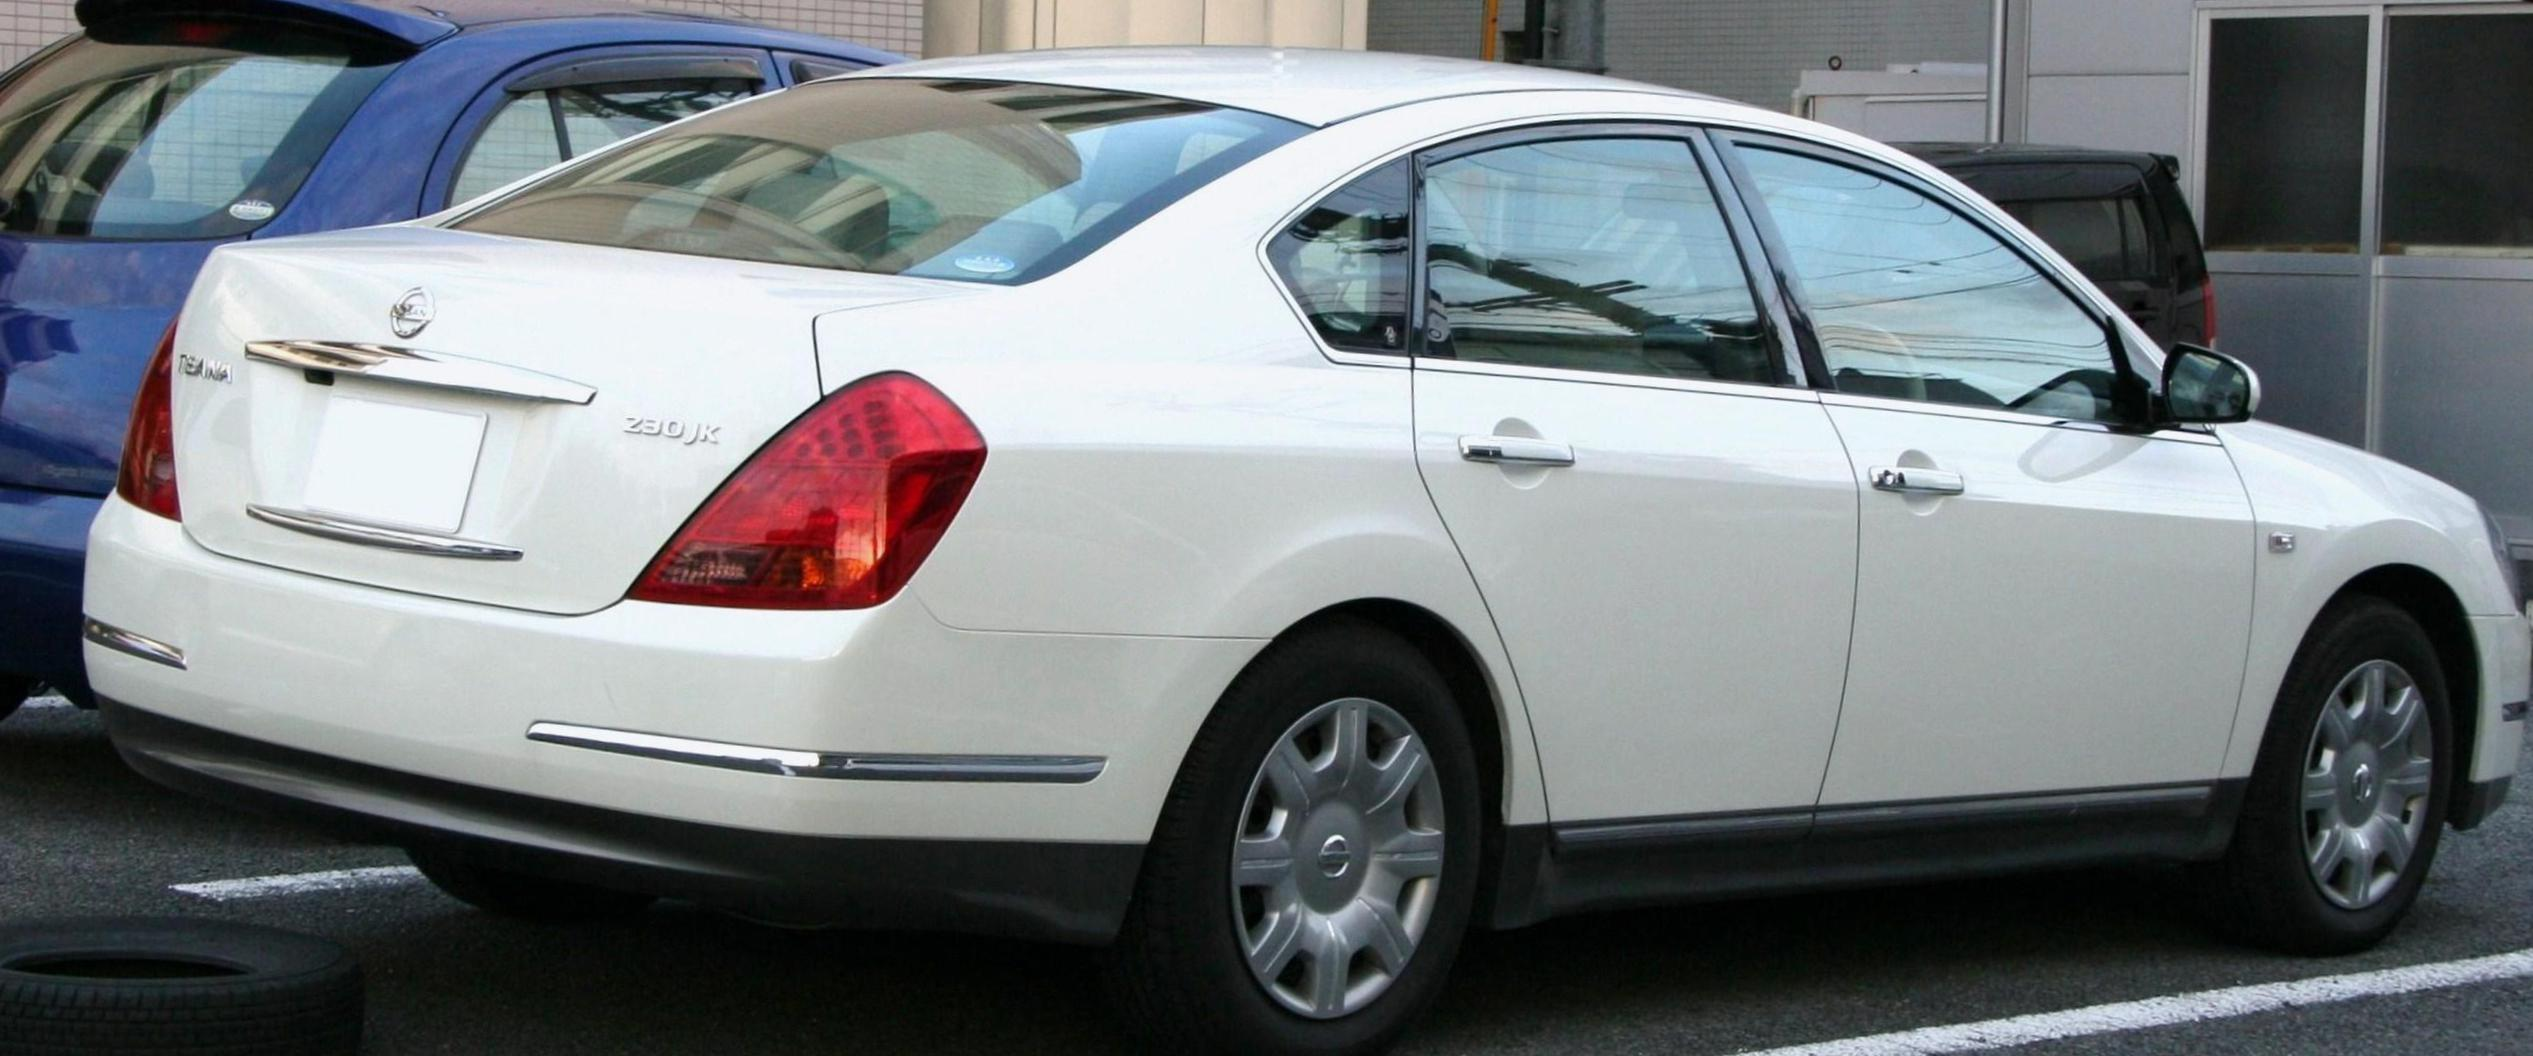 Nissan Teana Specifications 2015